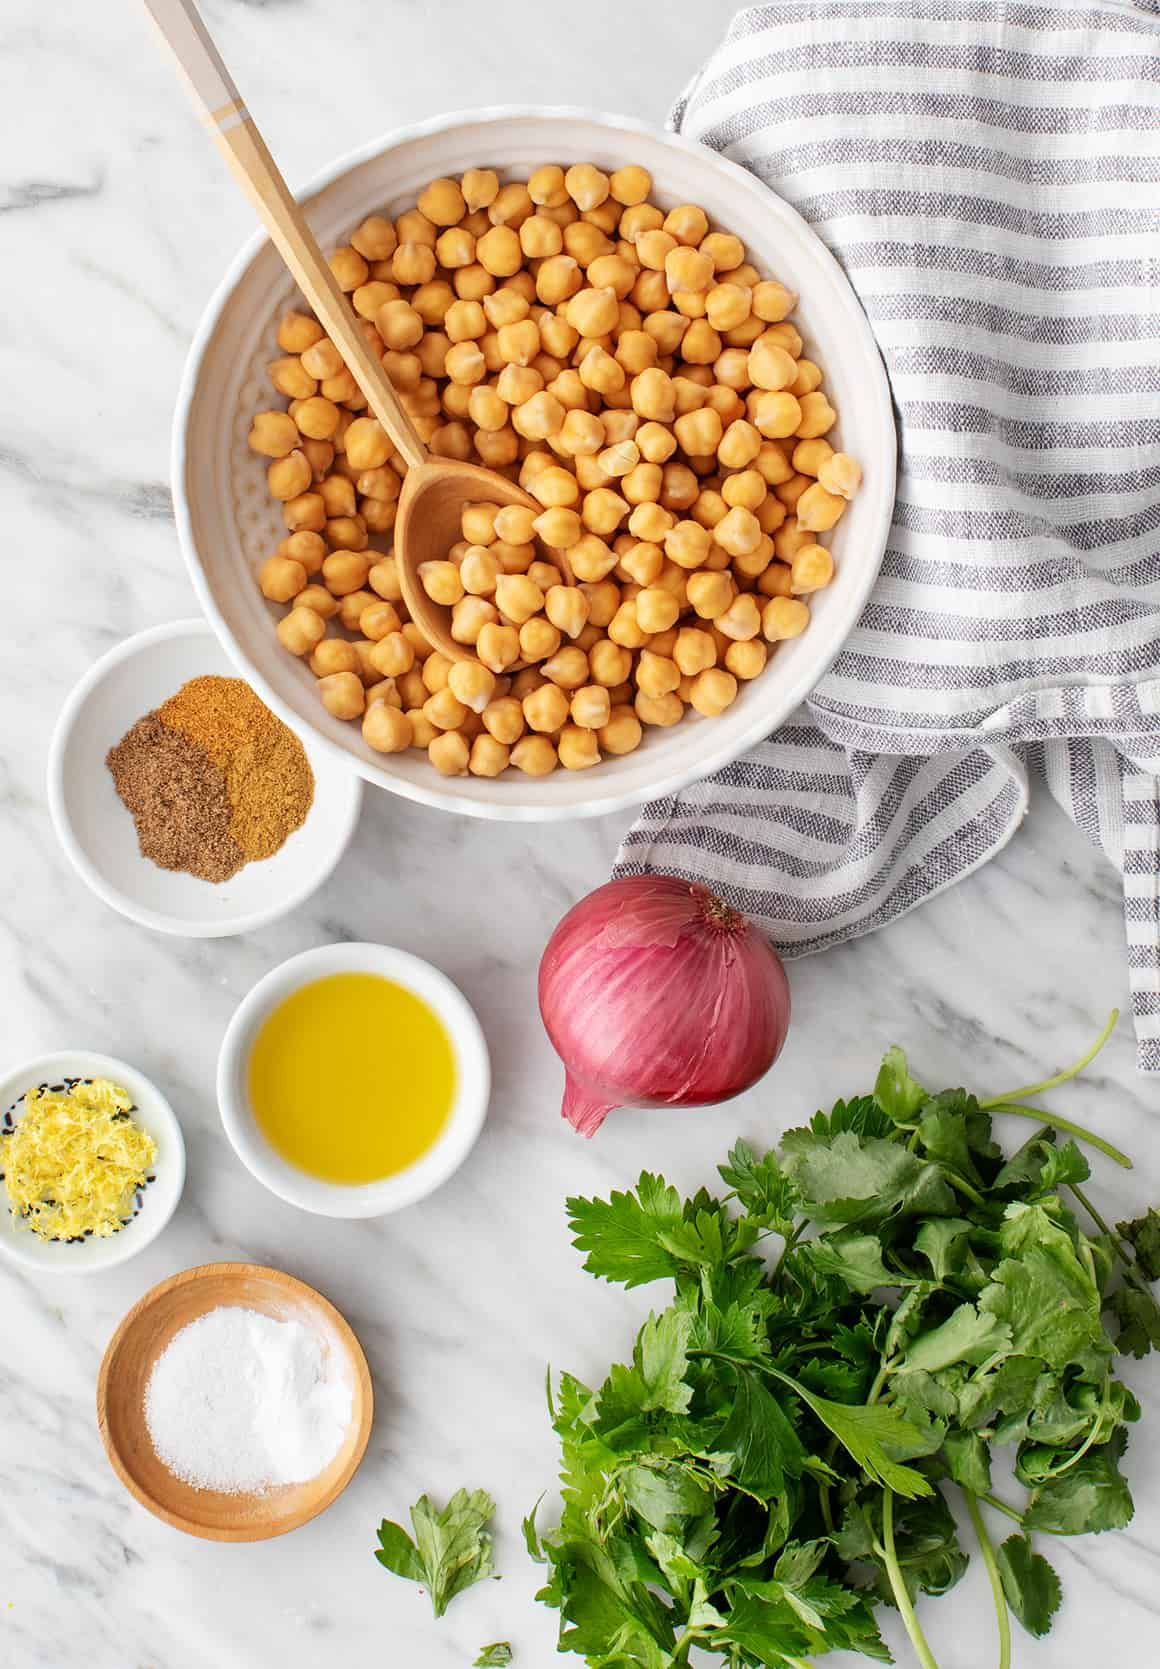 Falafel recipe ingredients